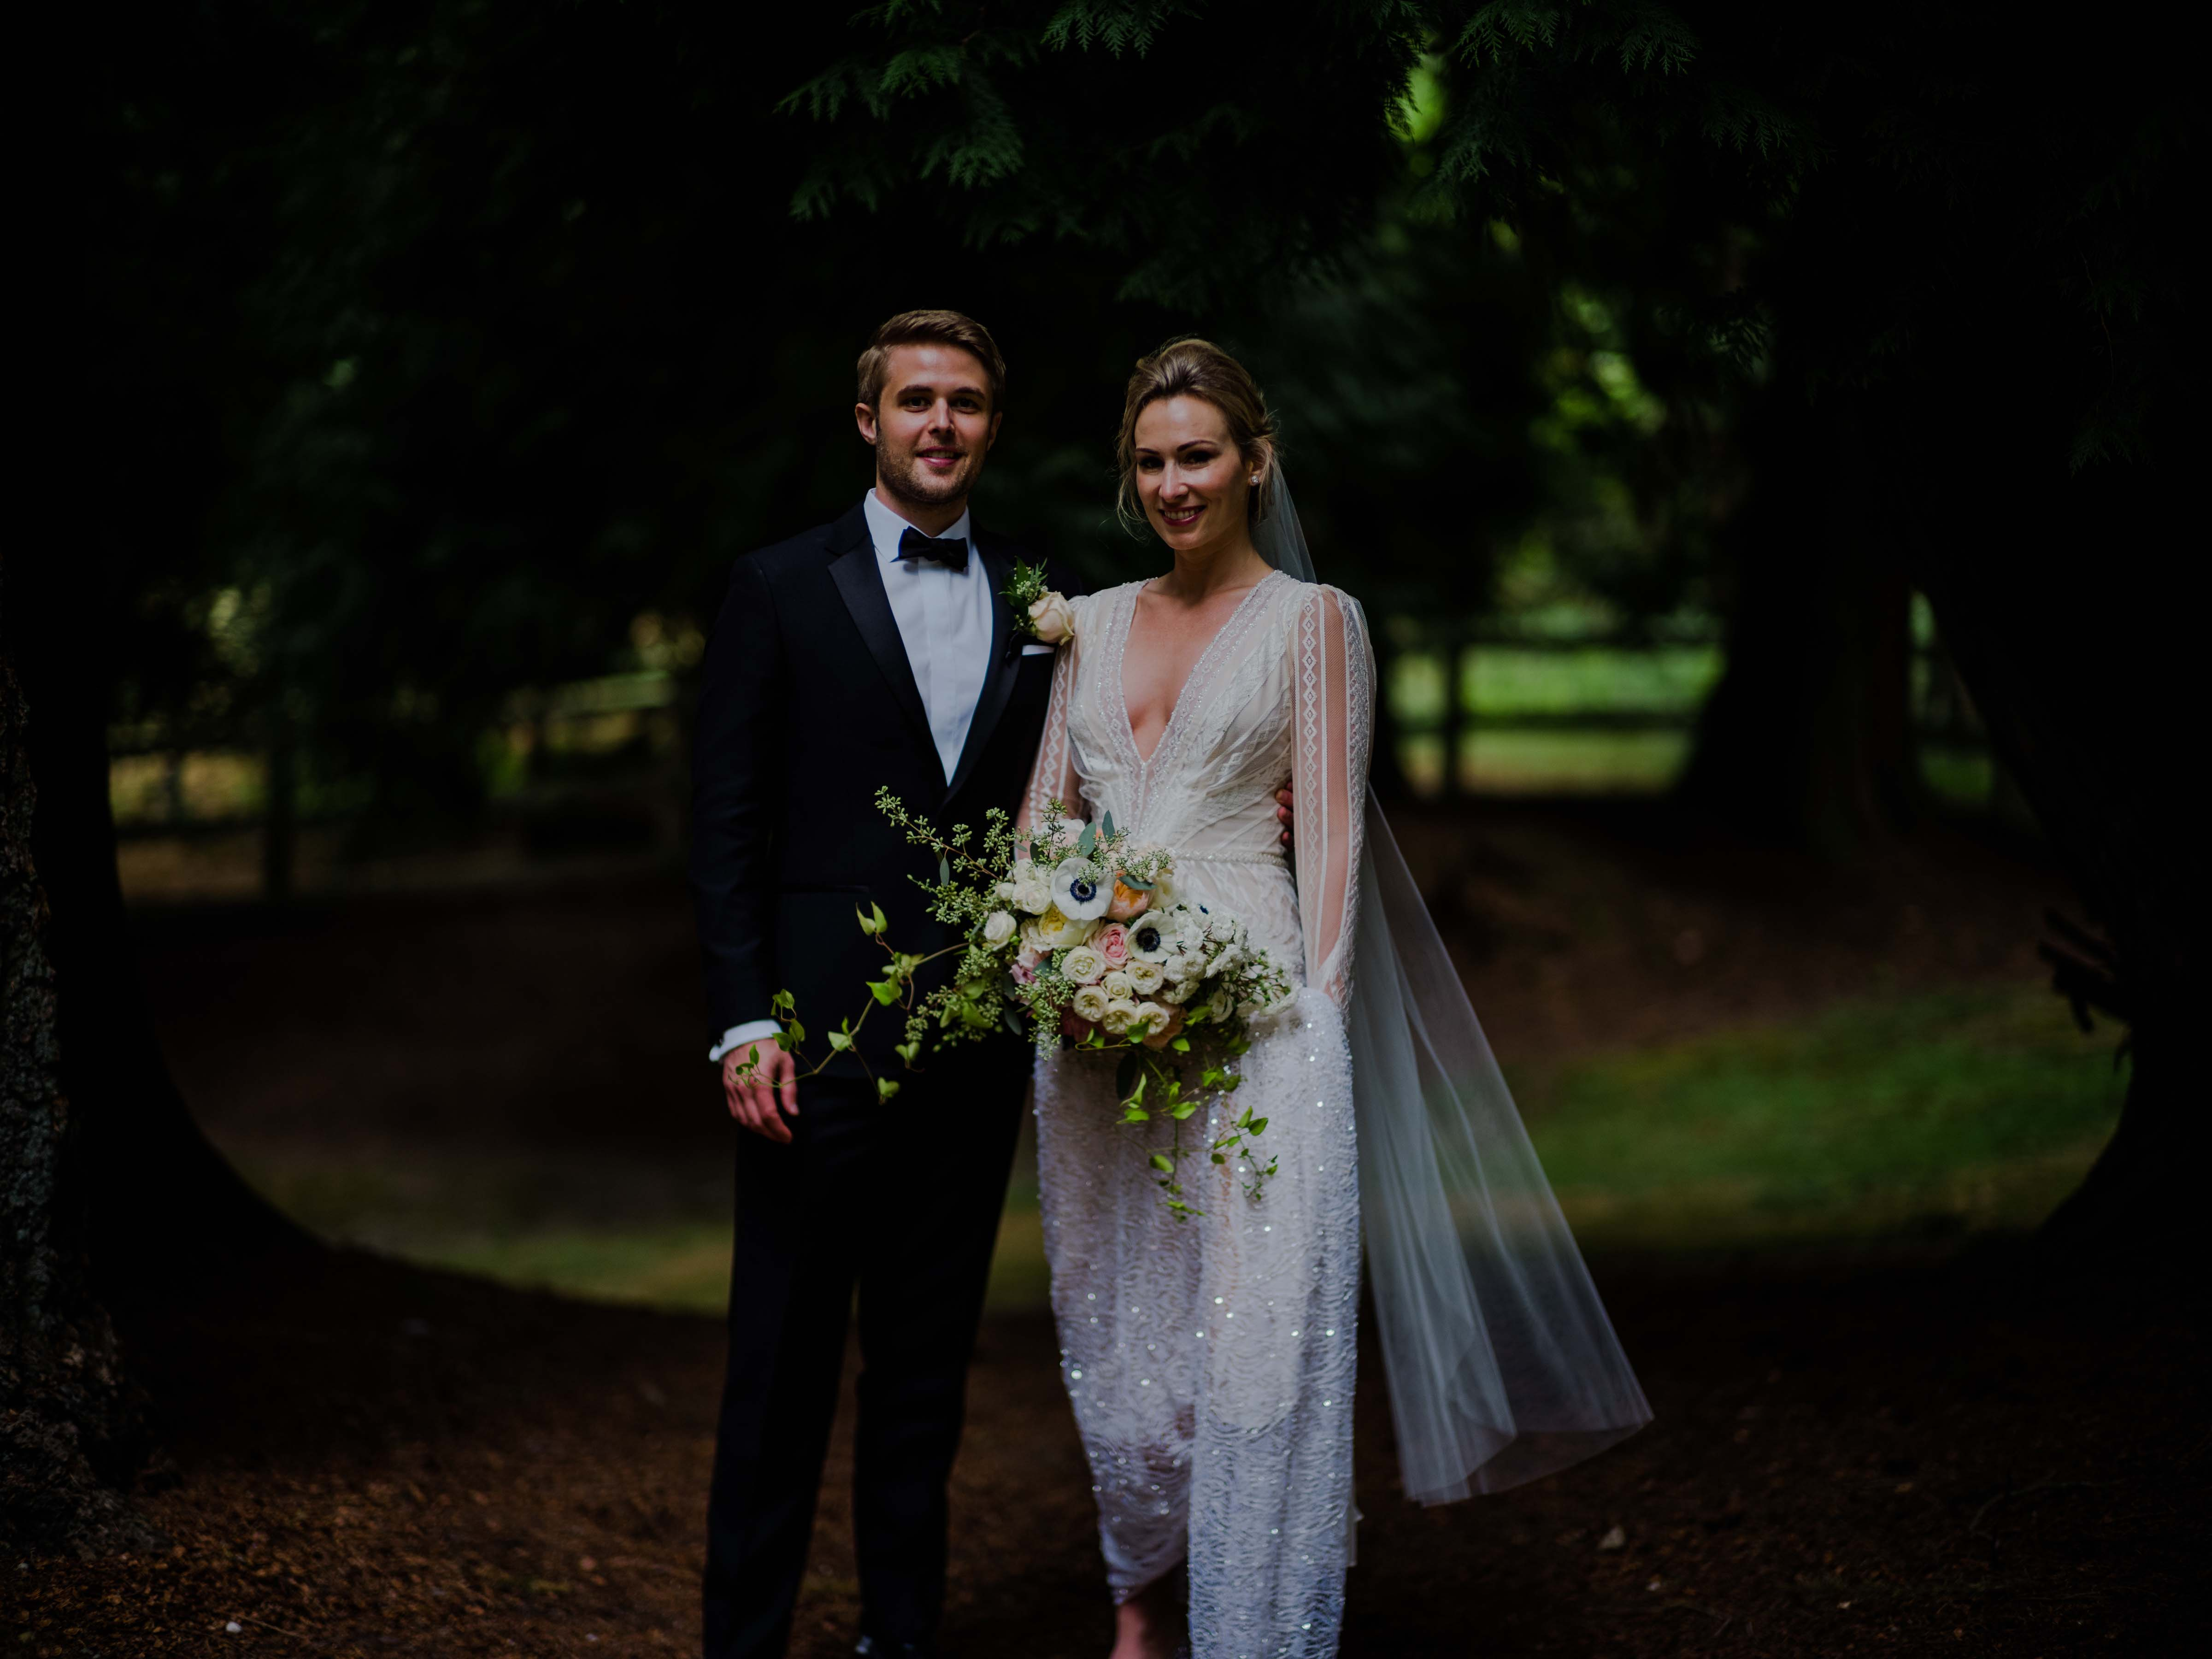 Bride and groom before their wedding at Chateau Lill, designed by Flora Nova Design